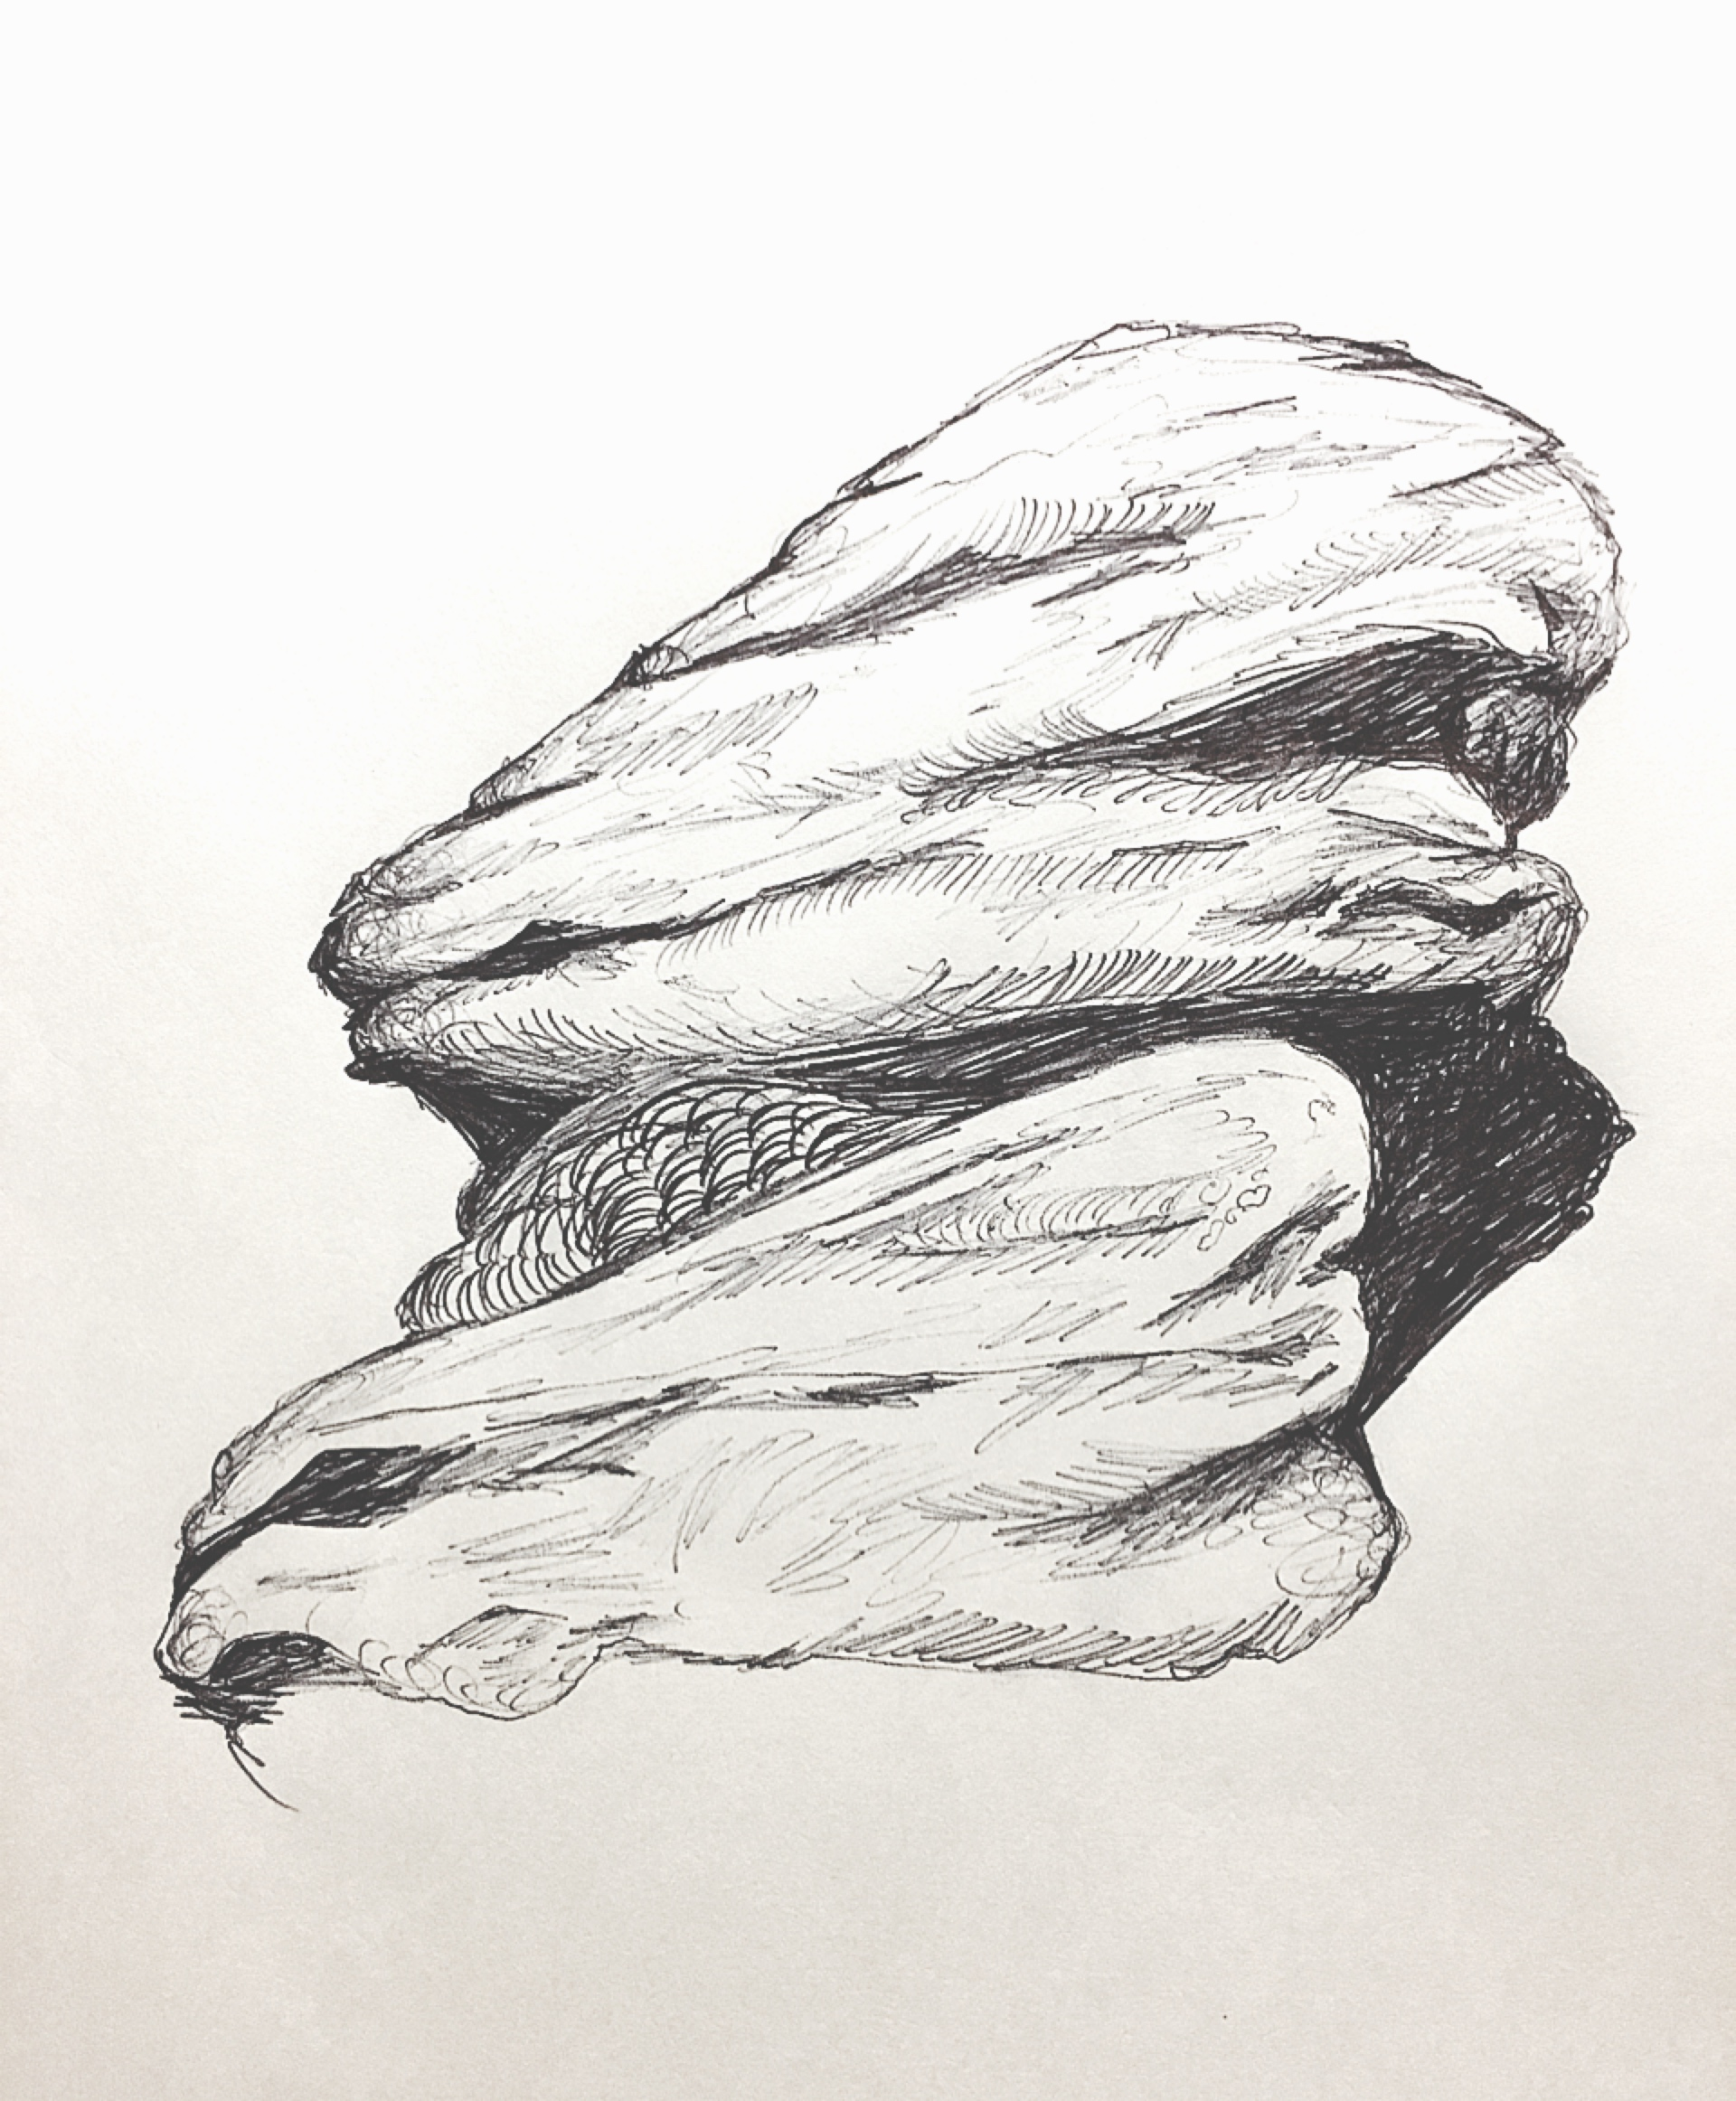 Late night doodle ; Rocks on Dartmoor